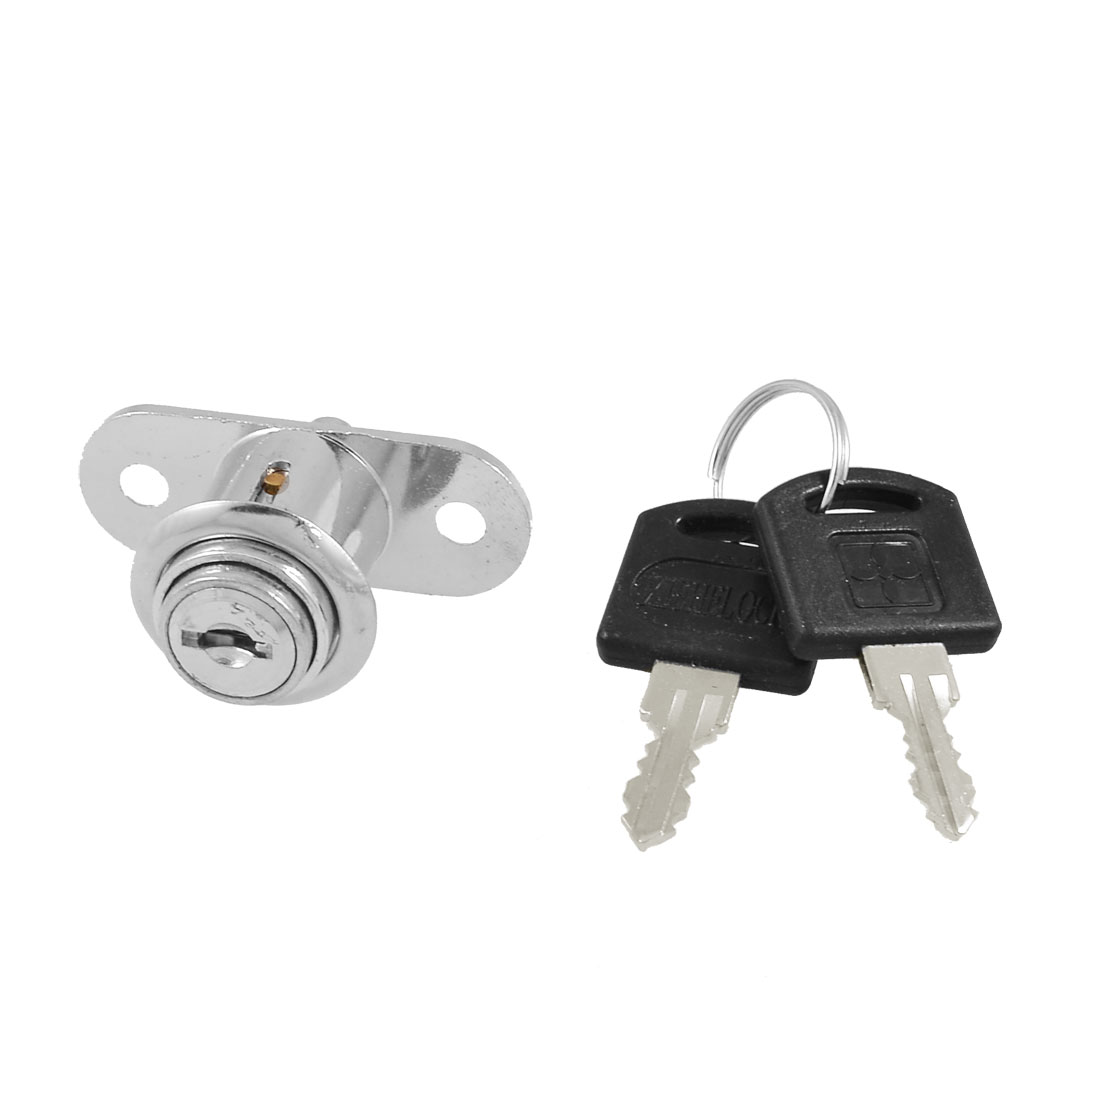 "Sliding Door 0.73"" Head Dia Plunger Lock Silver Tone + Keys"